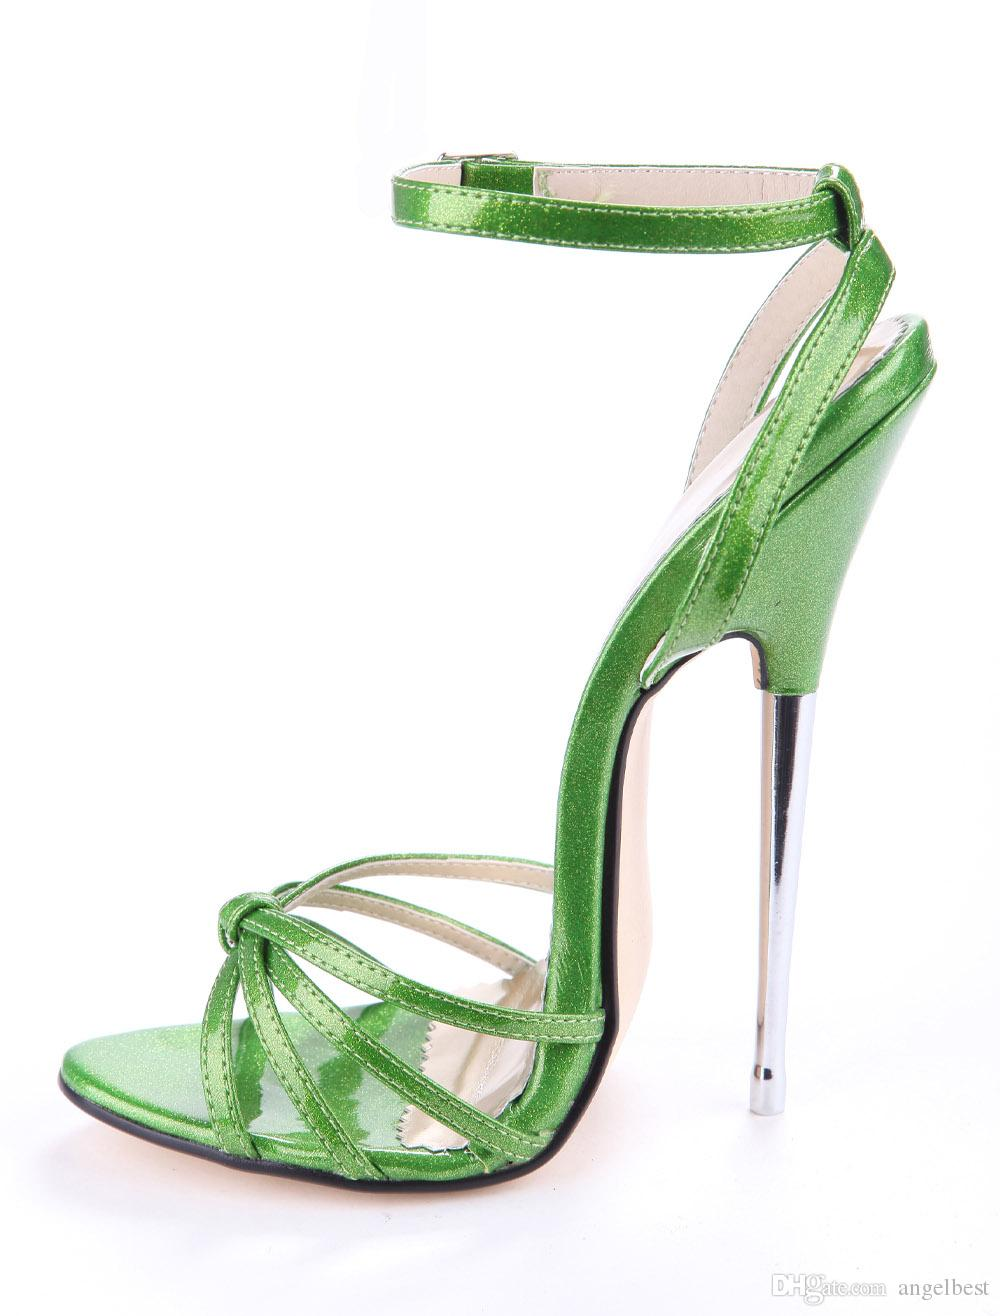 Sexy Design 16cm Steel Stiletto Heels Women Nightclub Dress Sandals Ankle Strap Leather Gladiator Sandals Party Shoes Woman Green Red Pink